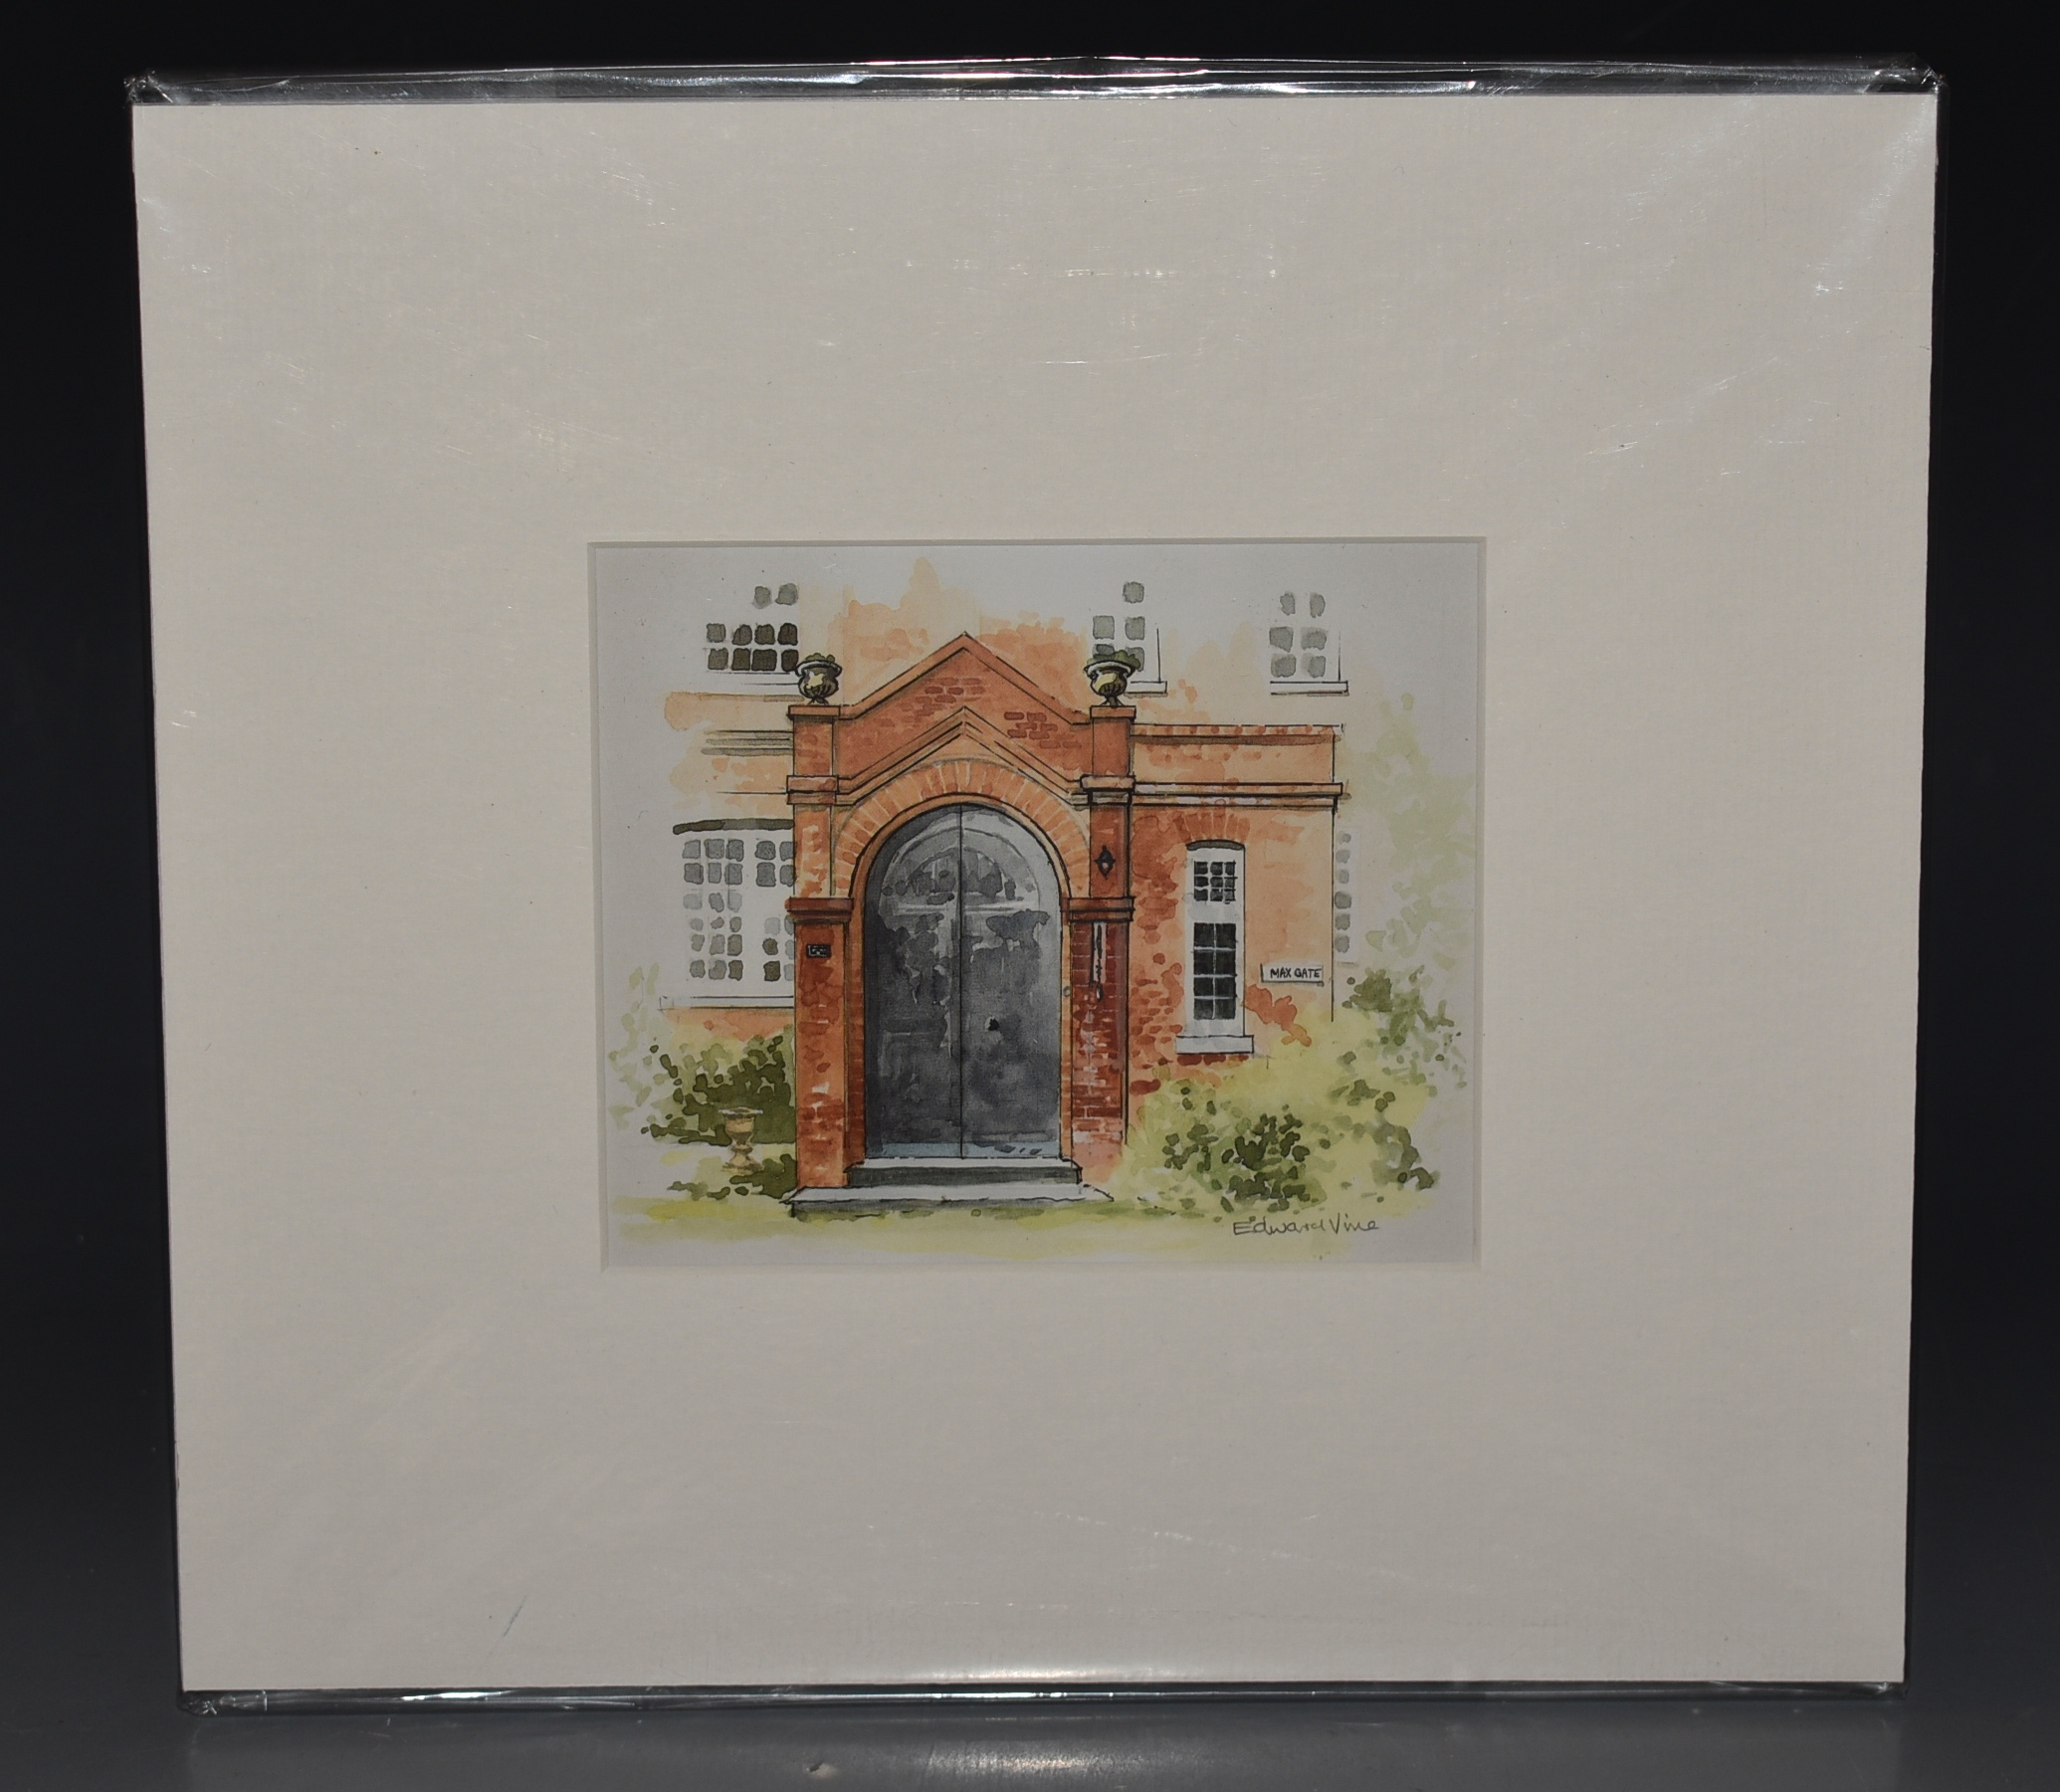 "Image for Signed Print of ""Max Gate"" Thomas Hardy's Residence, Dorchester FRONT ENTRANCE Signed in pencil by Aritist."